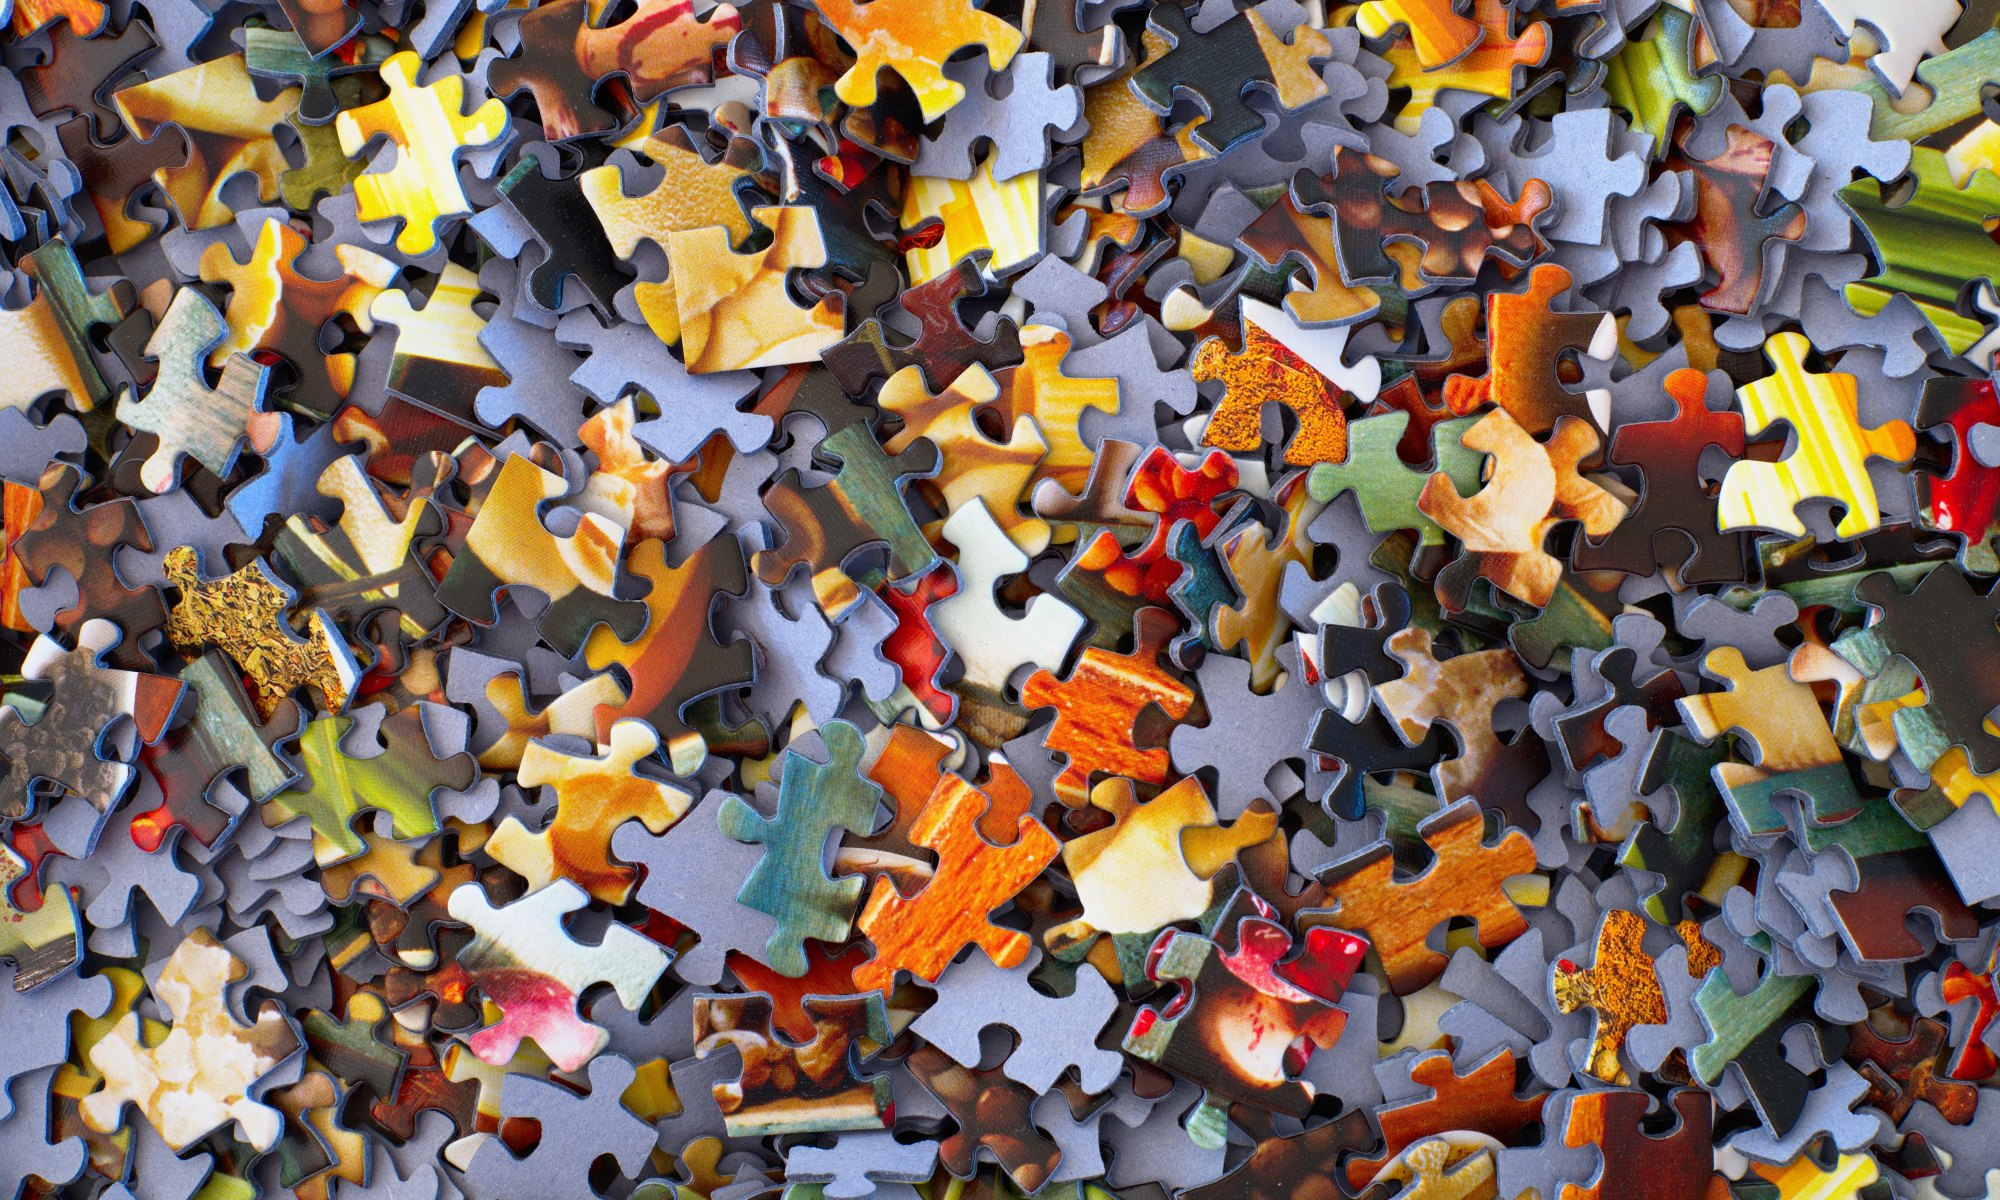 Stack of colorful jigsaw puzzle pieces representing life's problems